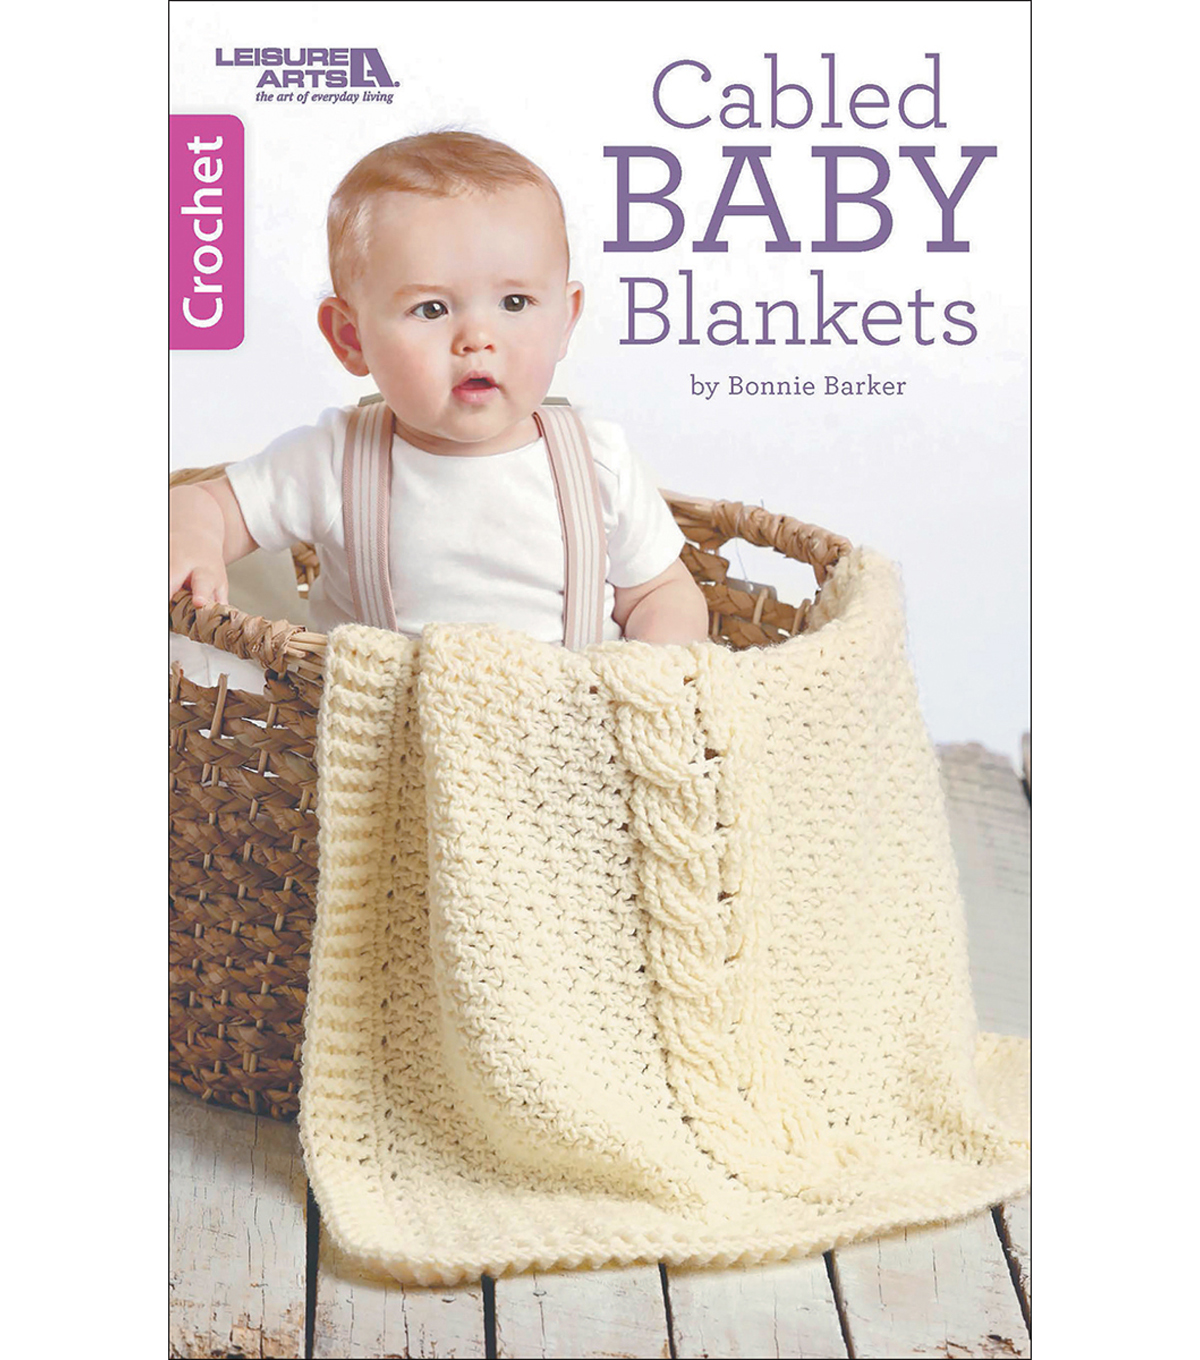 Book-Cabled Baby Blankets